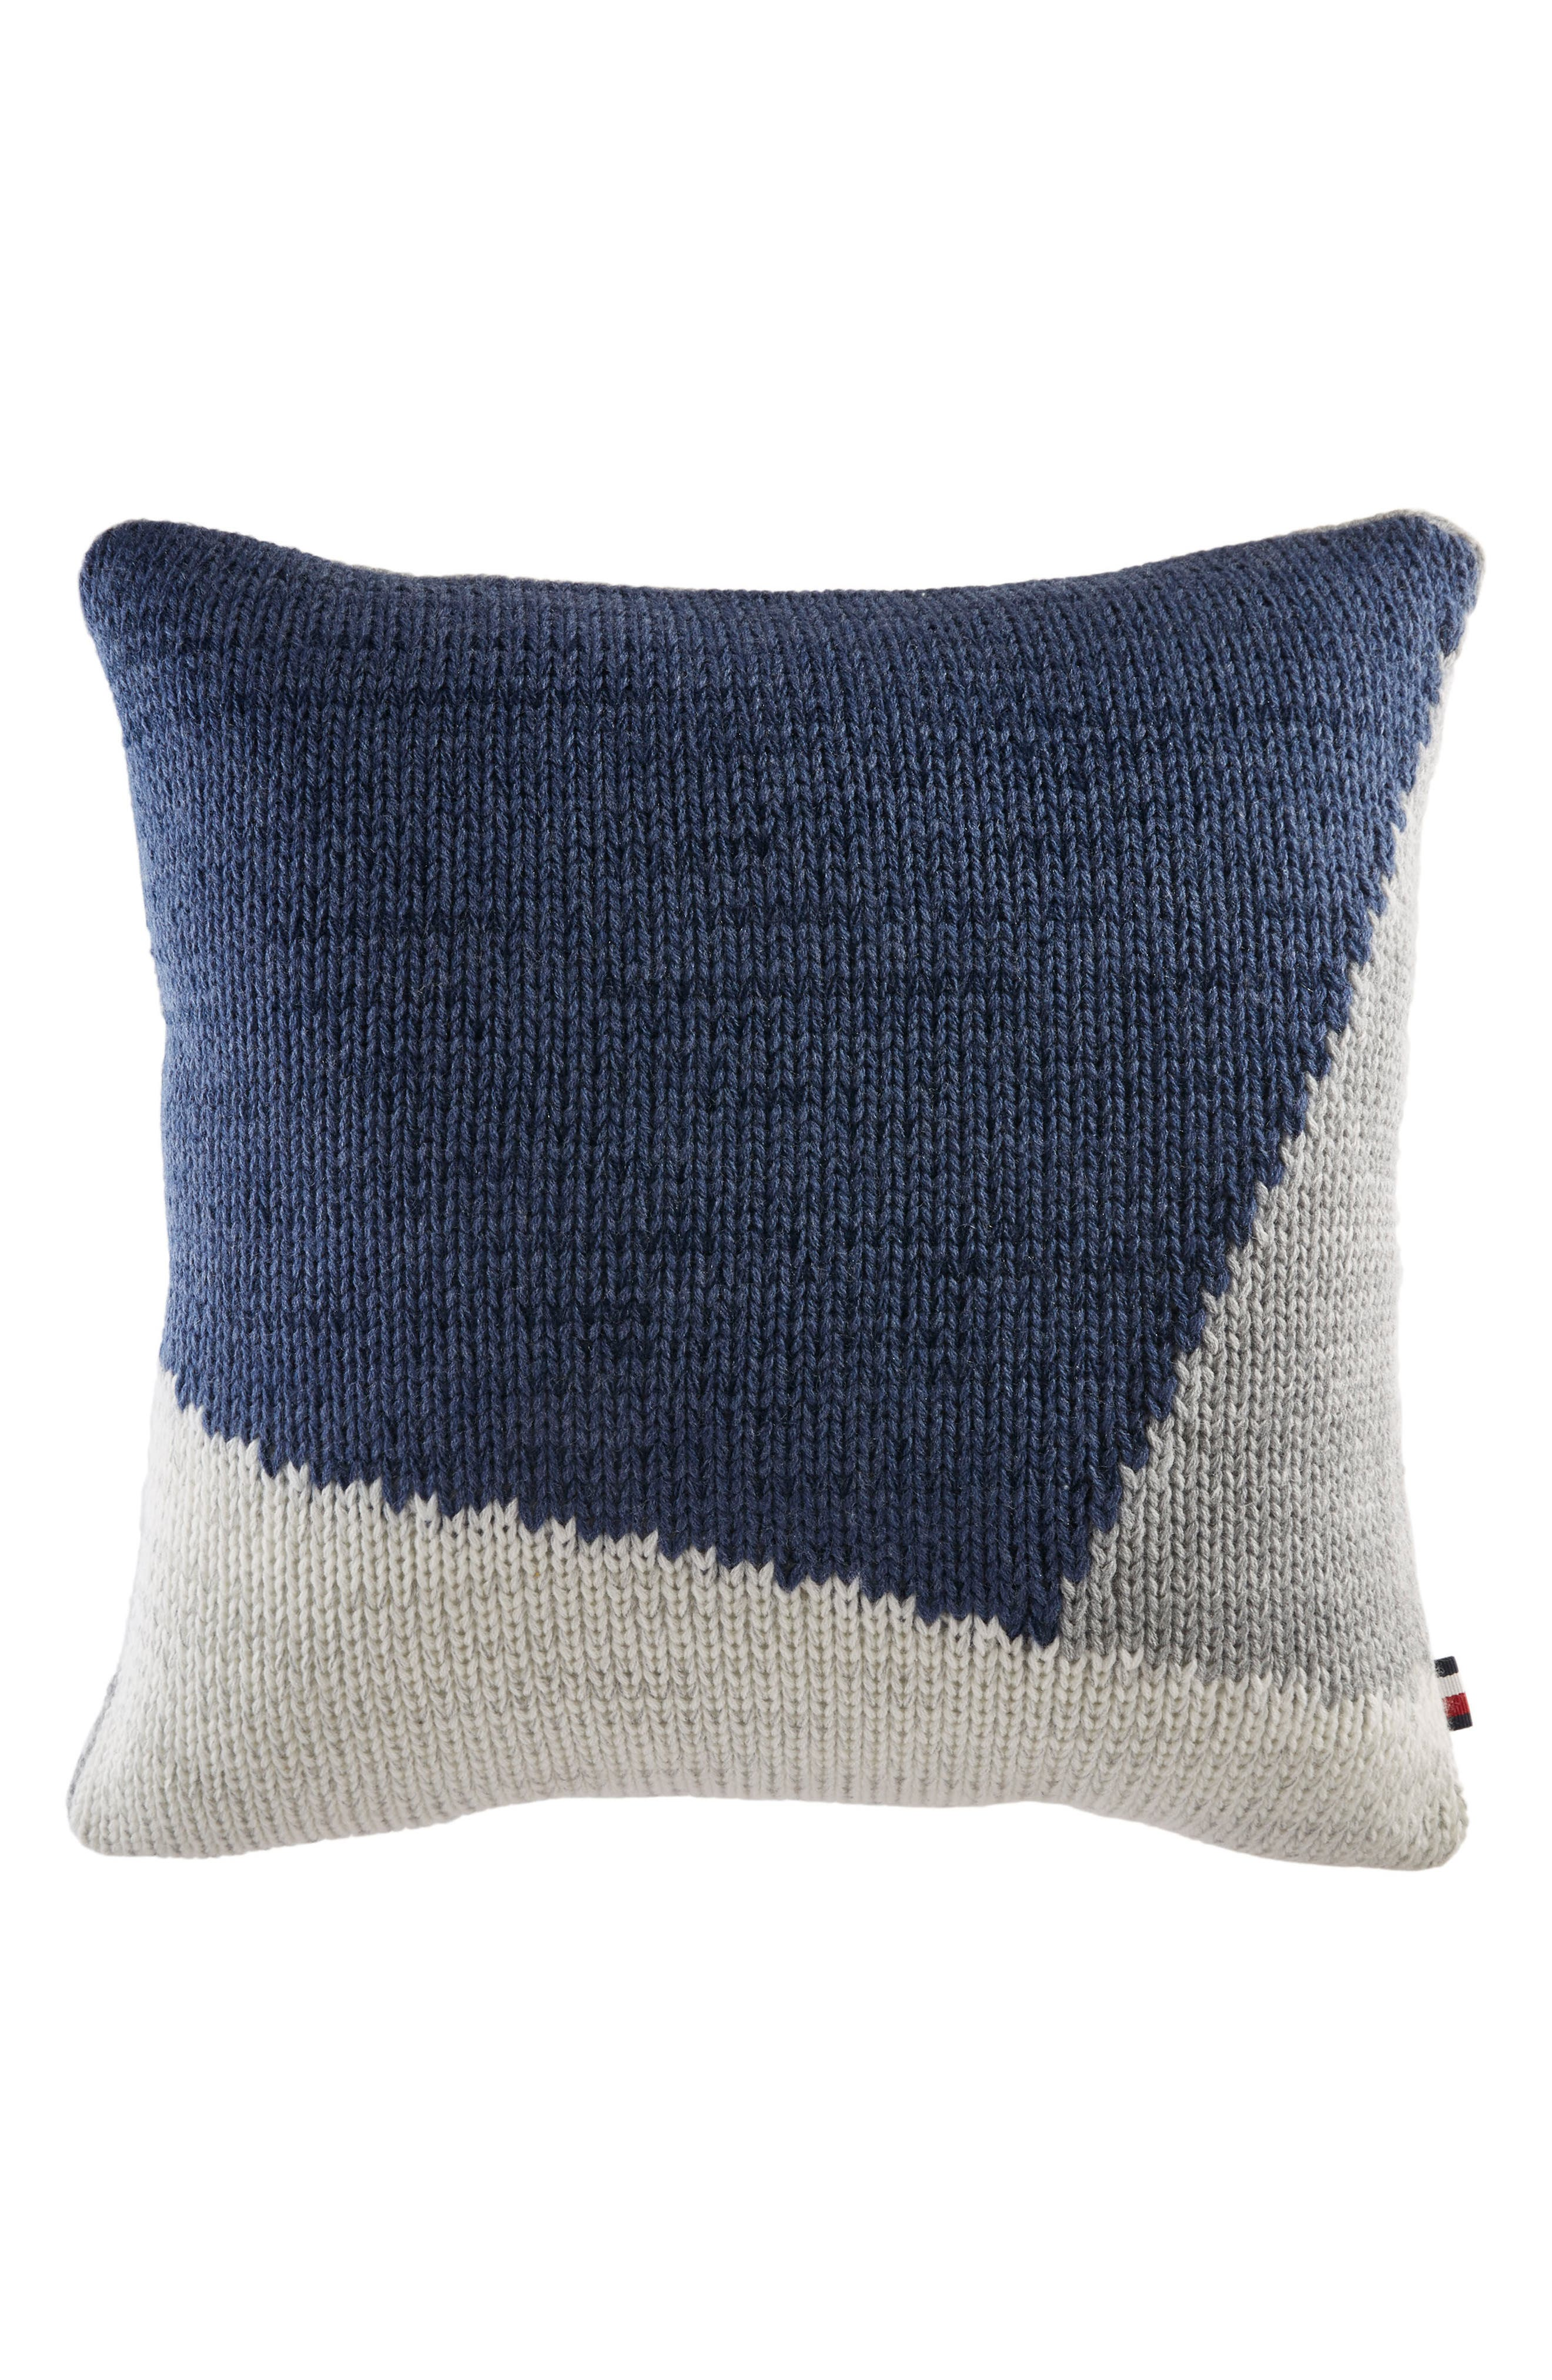 Tommy Hilfiger Colorblock Knit Accent Pillow